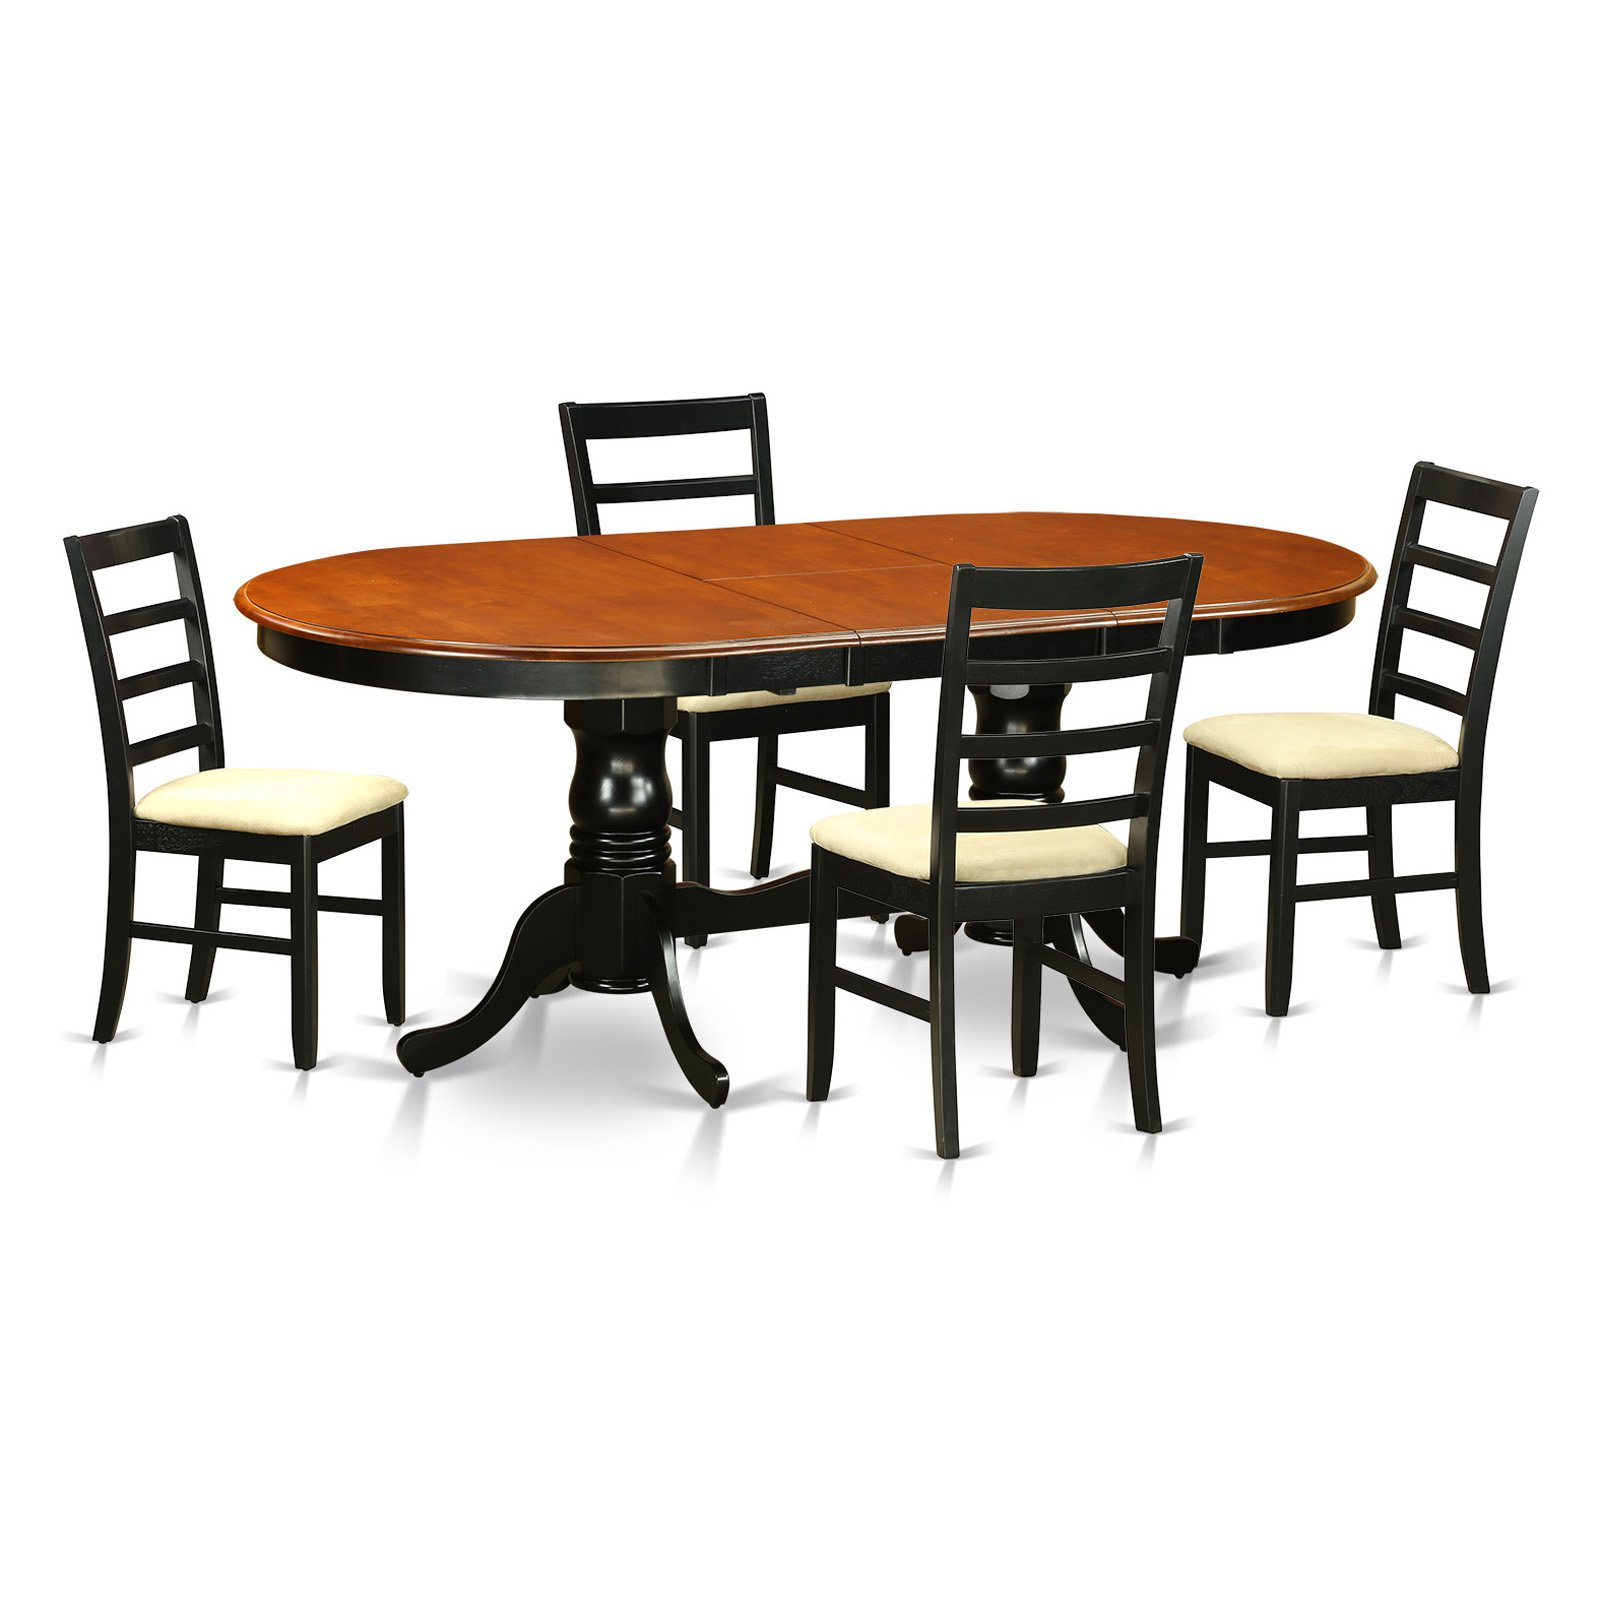 East West Furniture Plainville 5 Piece Shaker Dining Table Set